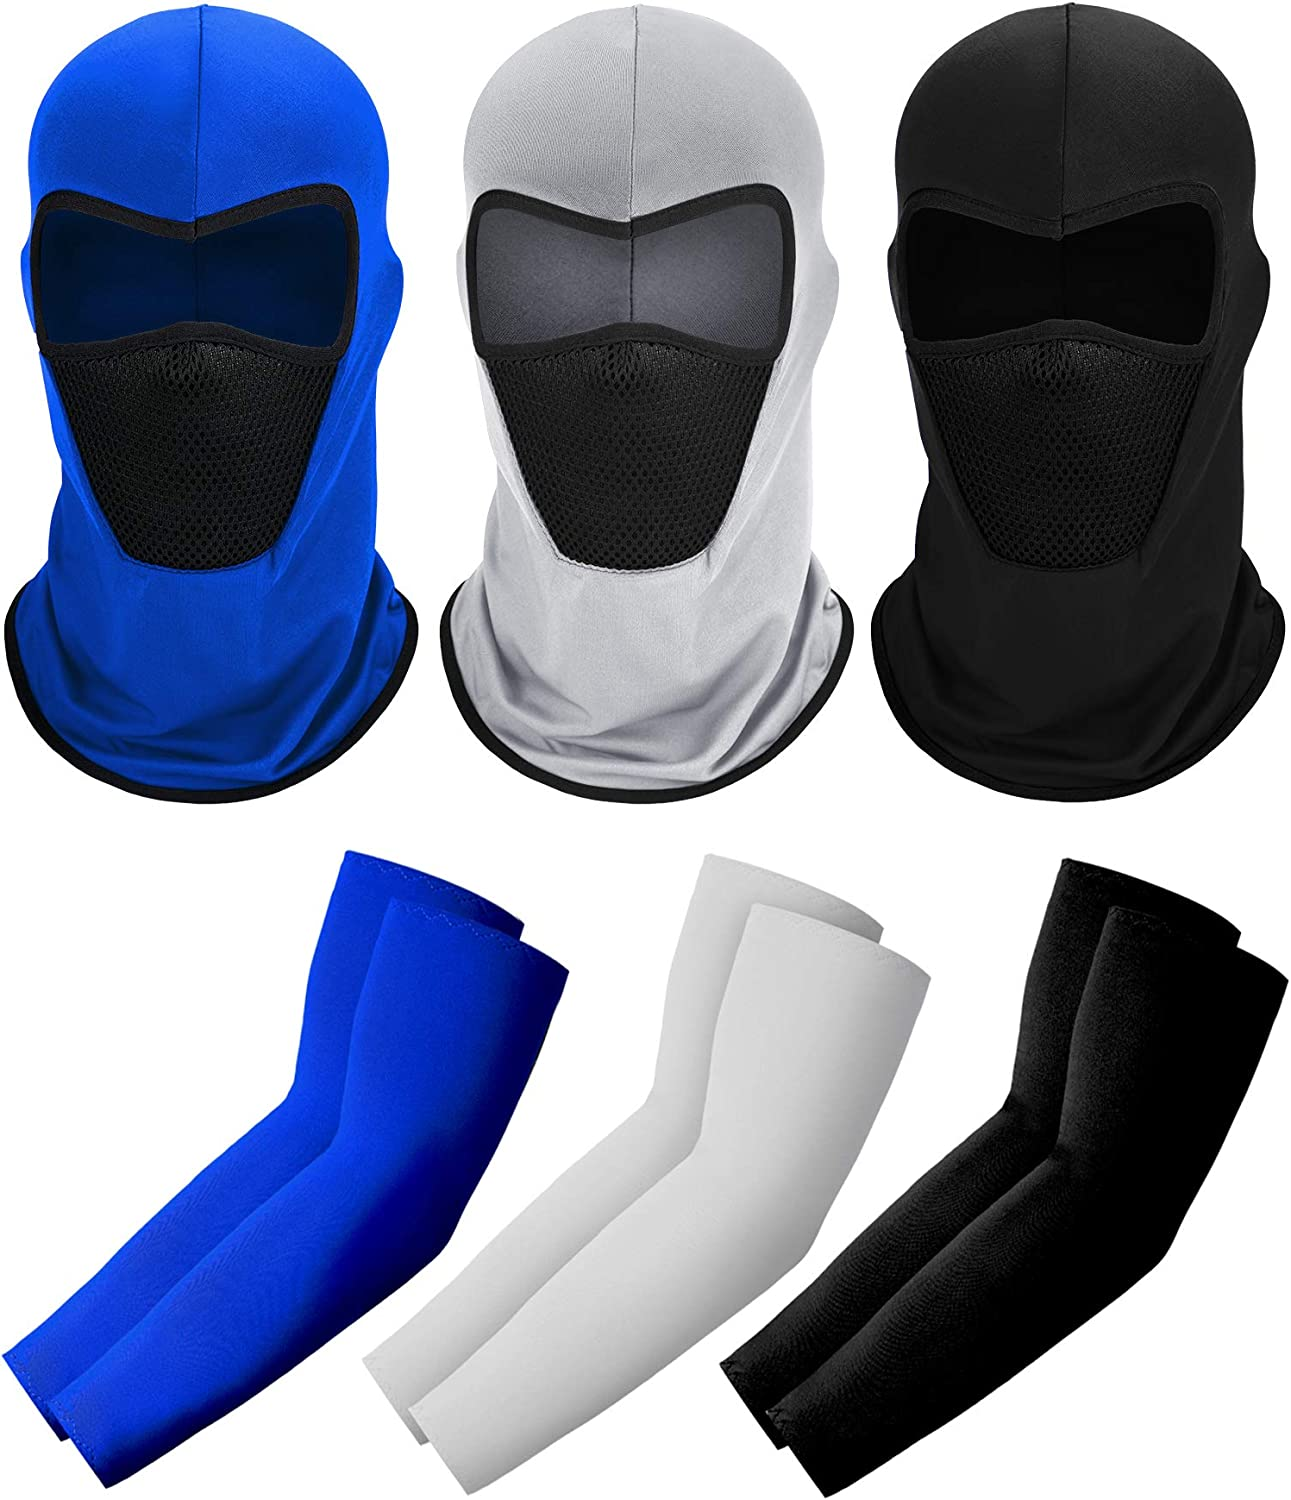 6 Pieces Summer Balaclava Full Face Cover and Cooling Arm Sleeves, UV Protection Breathable Neck Gaiter Head Wraps Ice Silk Arm Cover Set for Women Men